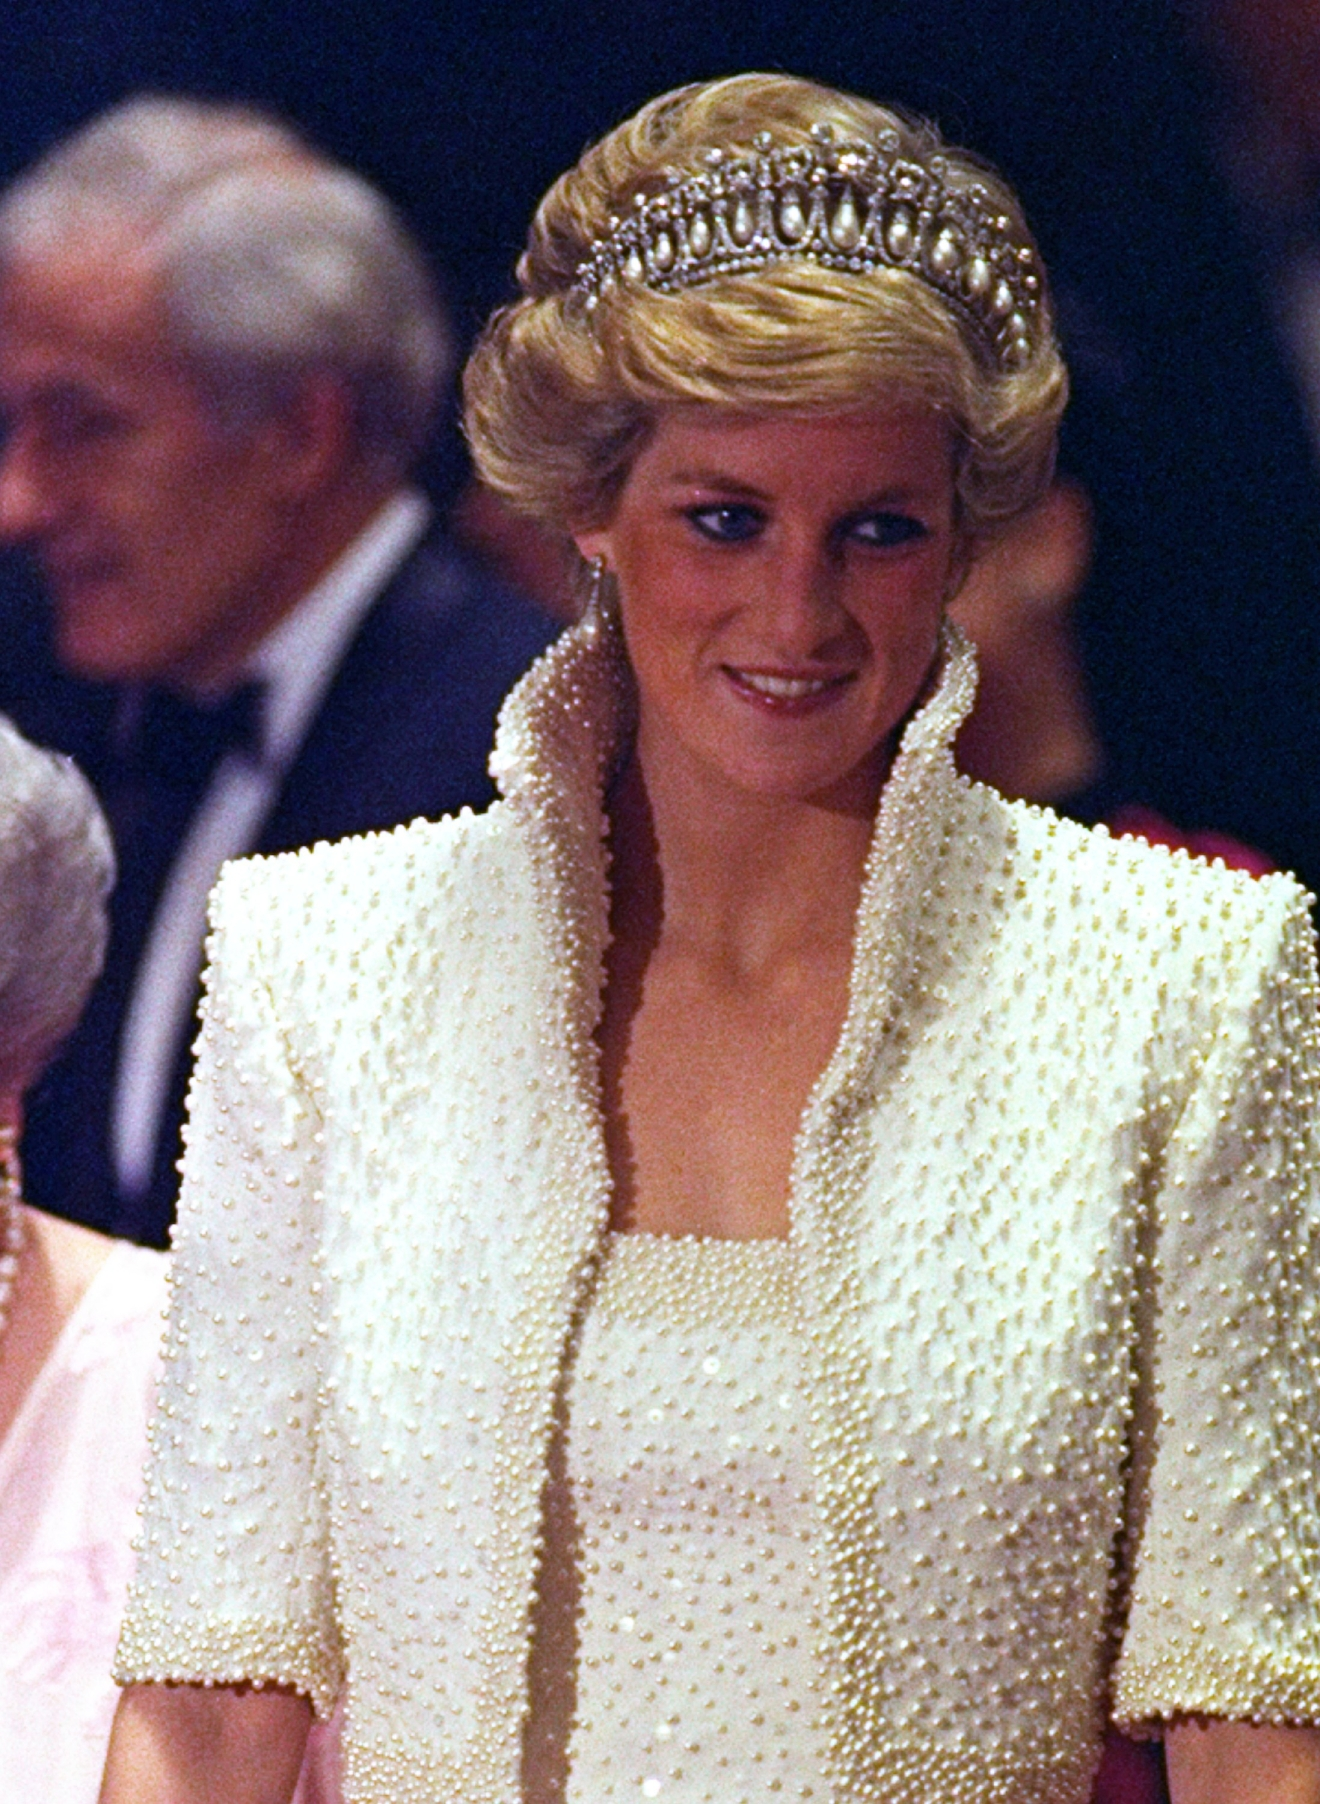 "FILE - In this 1989 file photo, Diana, Princess of Wales smiles during an official visit to Hong Kong. This dress is part of an exhibition of 25 dresses and outfits worn by Diana entitled ""Diana: Her Fashion Story"" at Kensington Palace in London, opening on Friday, Feb. 24, 2017. (AP Photo/Liu Heung Shing, file)"